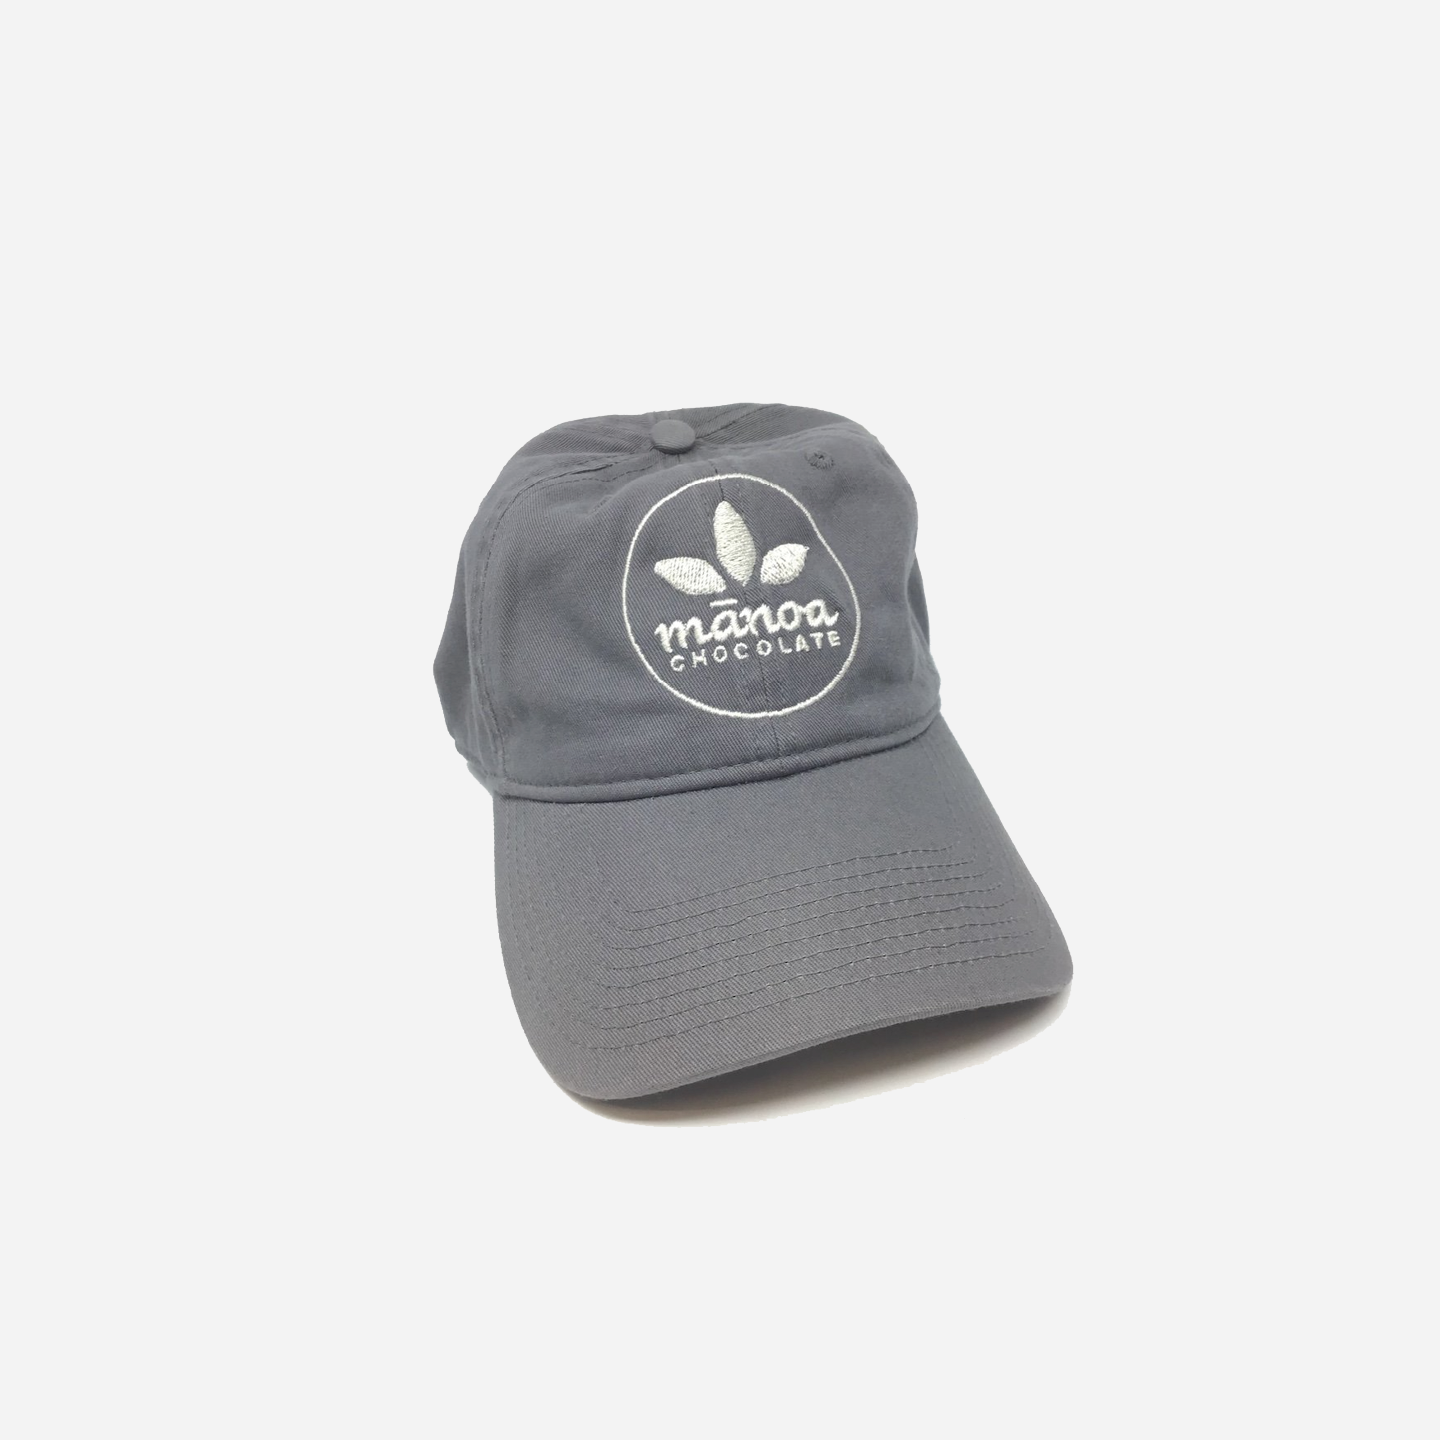 Mānoa Chocolate Dad Cap